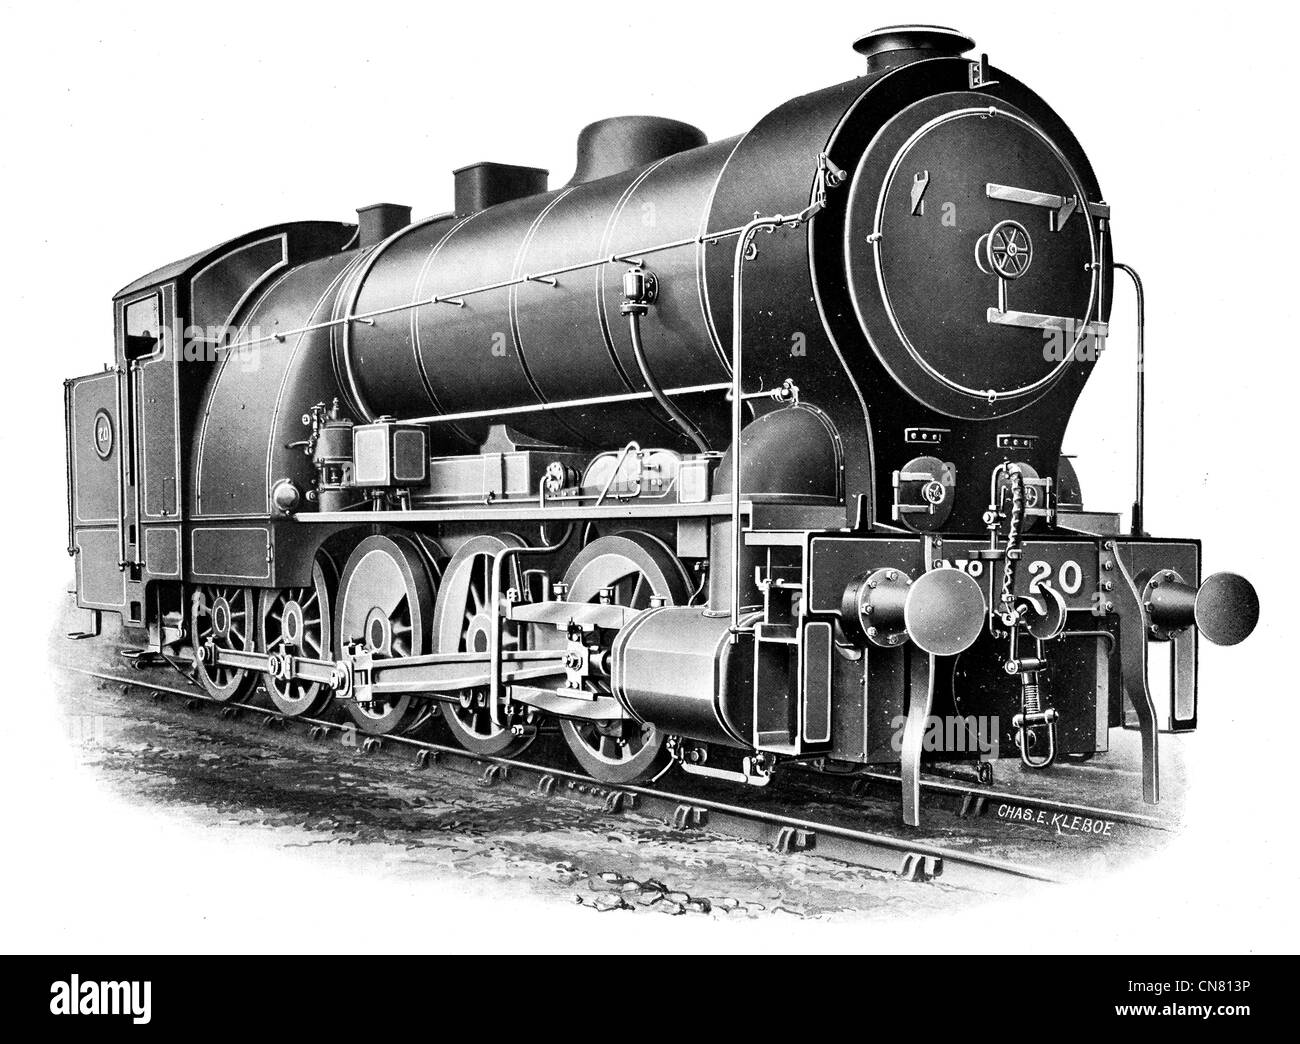 1900 steam train locomotive engine railway boiler driver carriage power transport - Stock Image